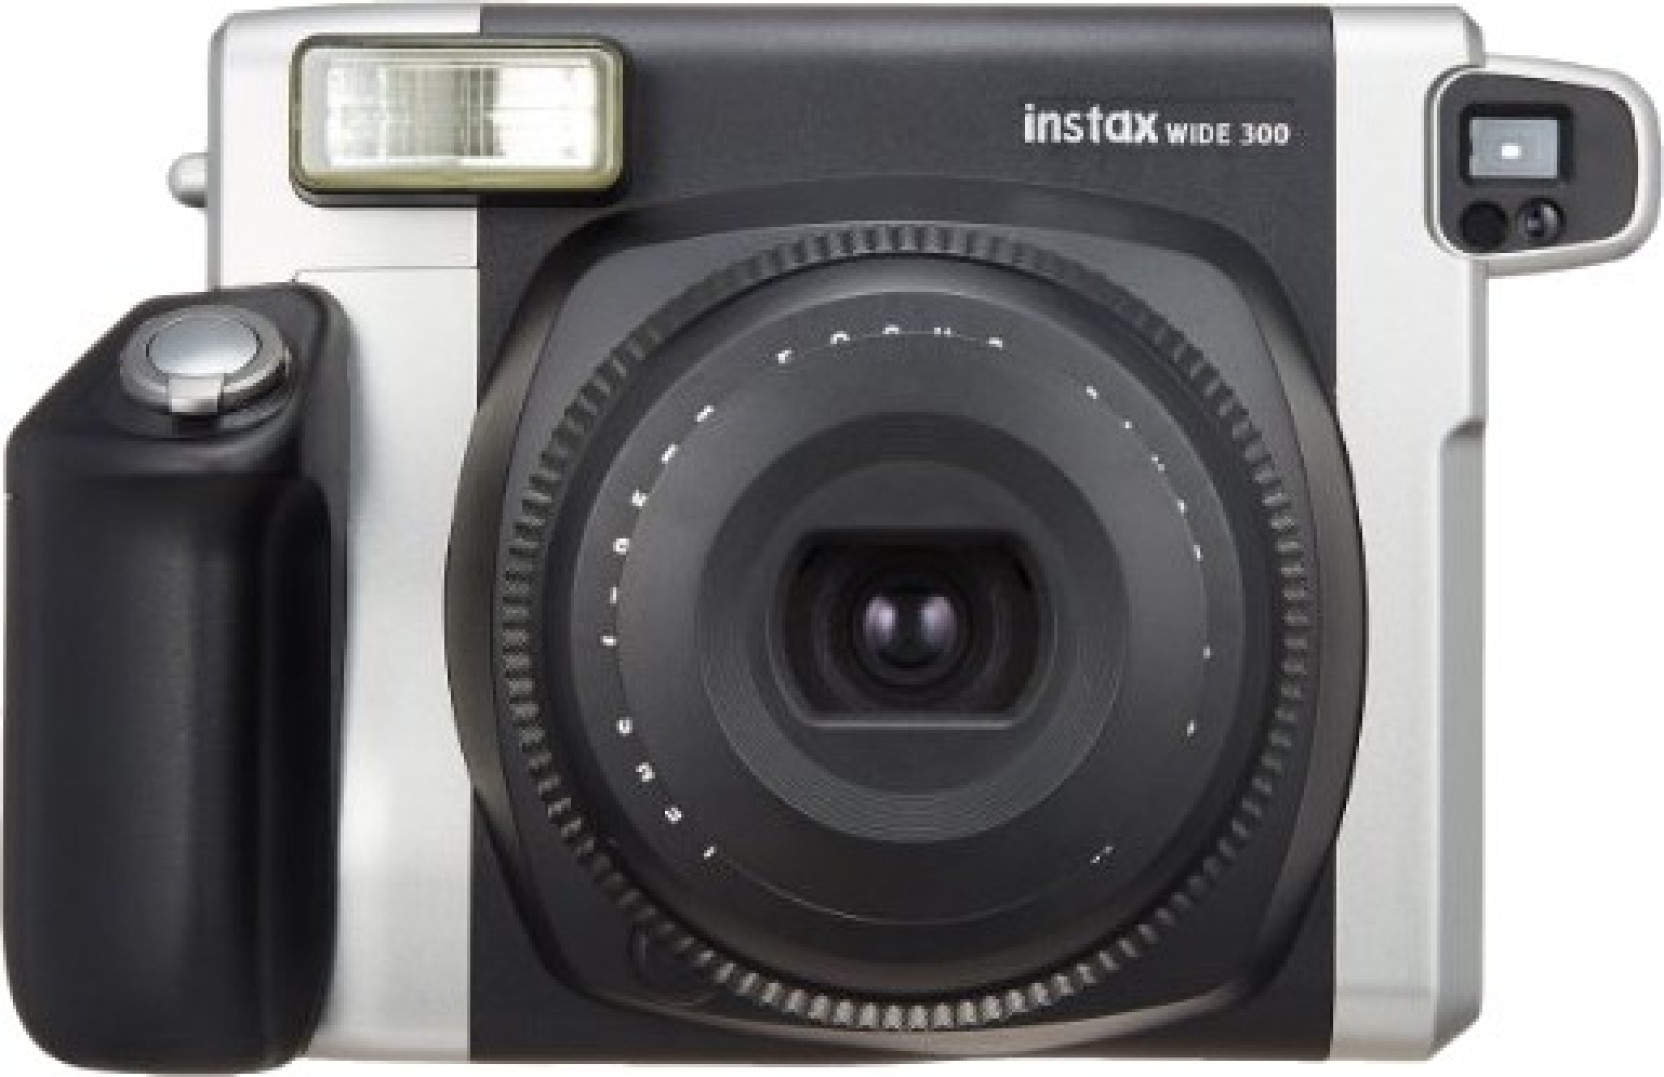 buy fujifilm instax wide 300 instant camera online at best prices in india. Black Bedroom Furniture Sets. Home Design Ideas